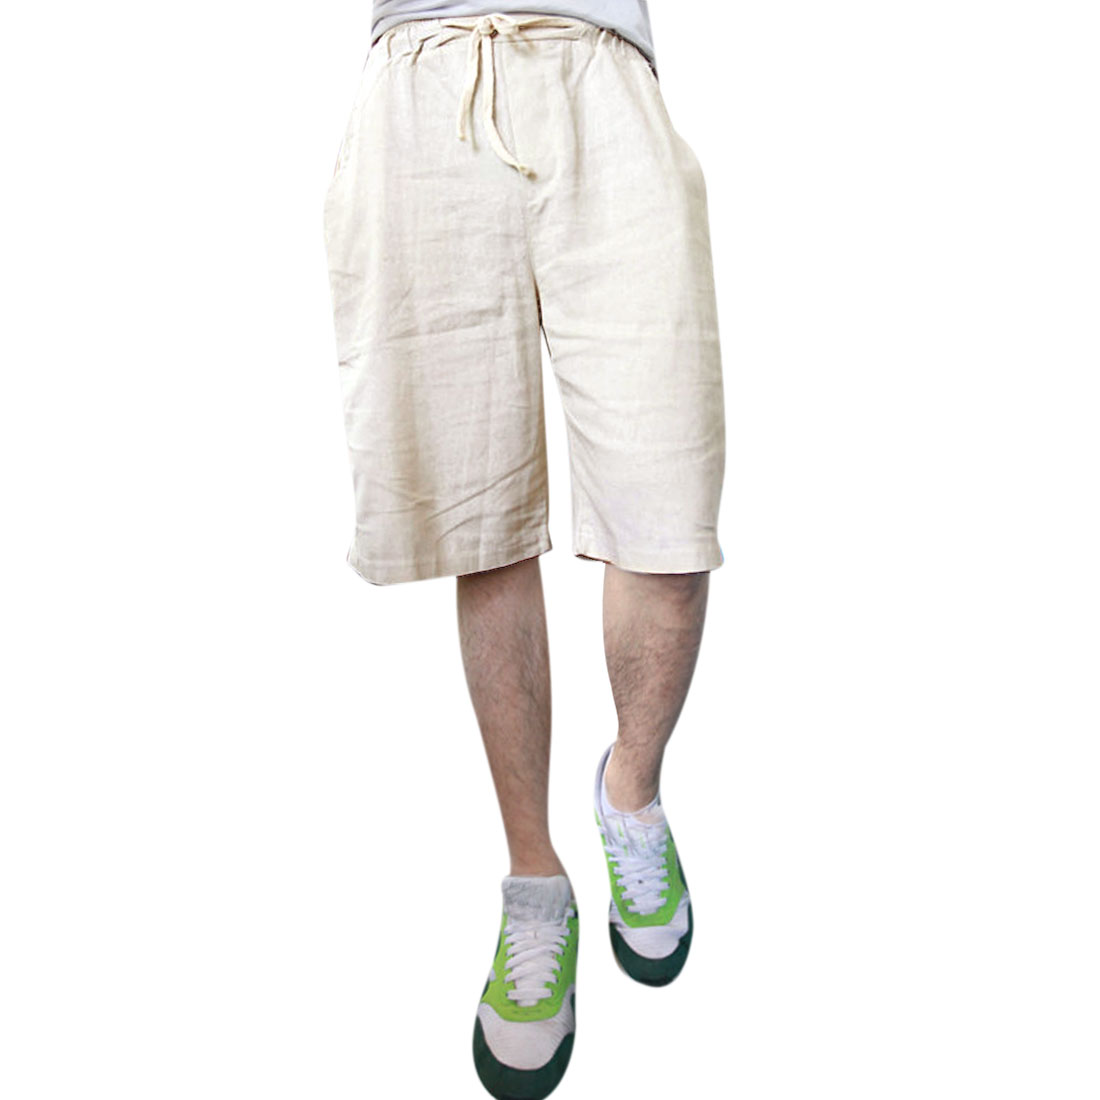 Man Drawstring Hip Pockets Linen Leisure Fashion Shorts Beige W27